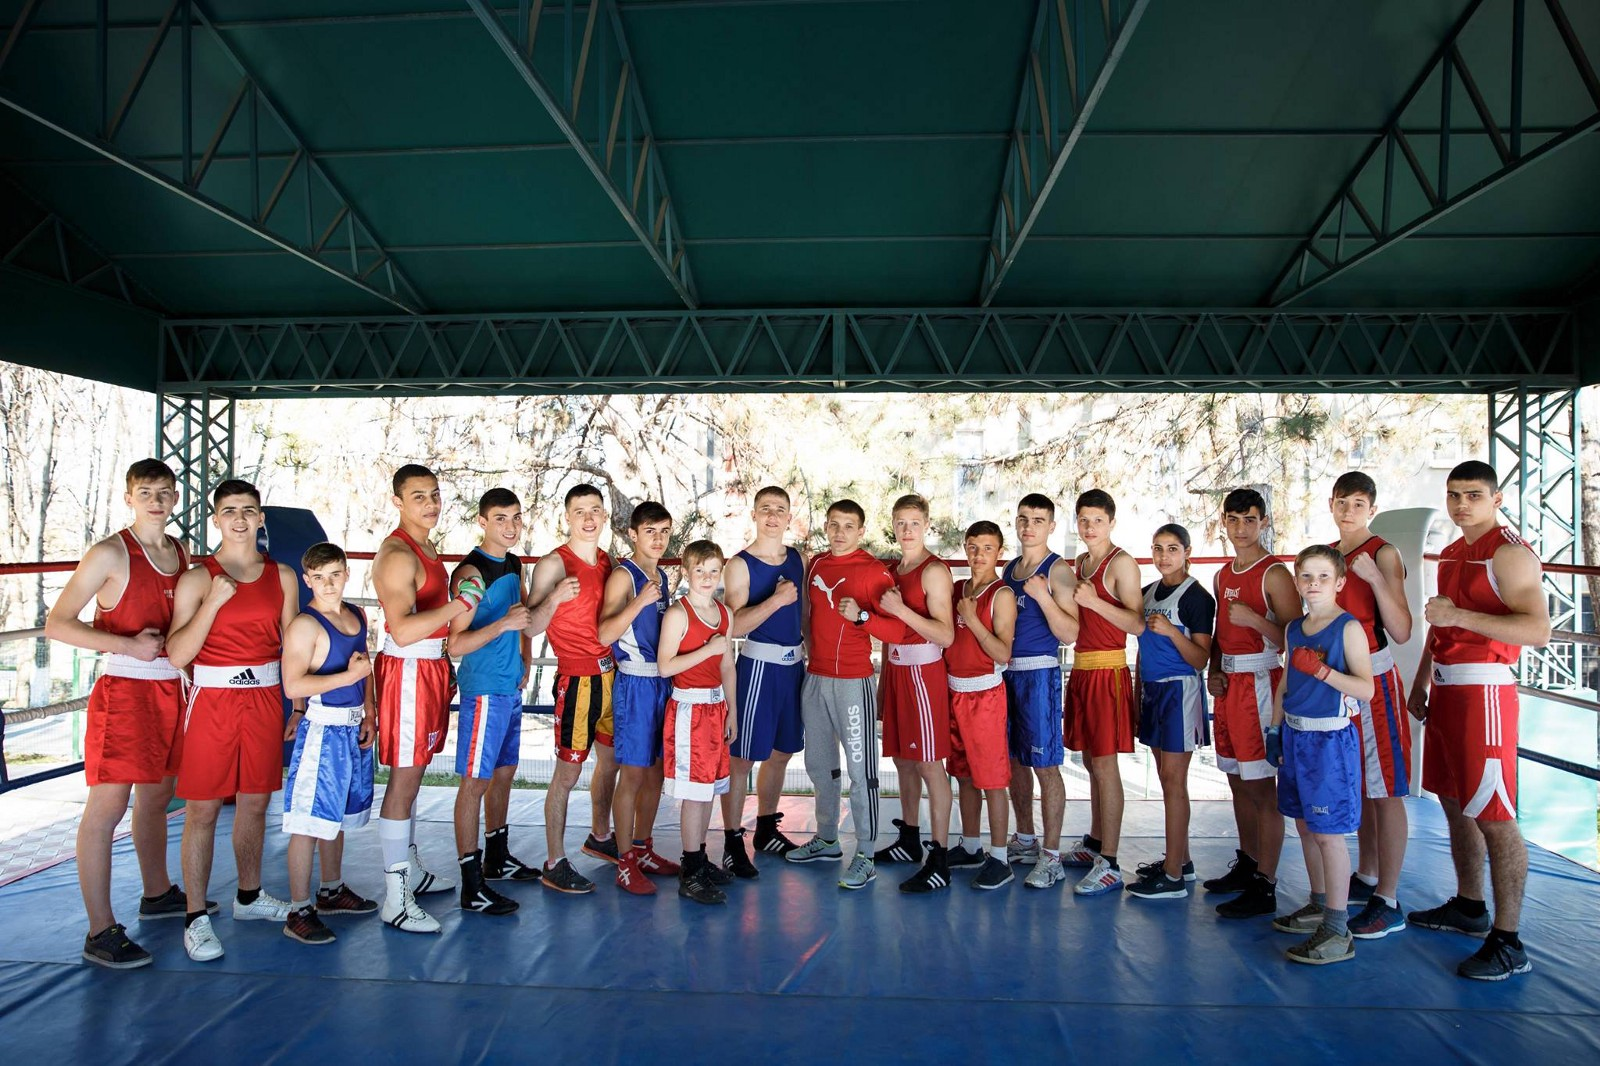 Stela is the only girl in her boxing club in Hincesti, Moldova. (Courtesy of Stela Facebook)